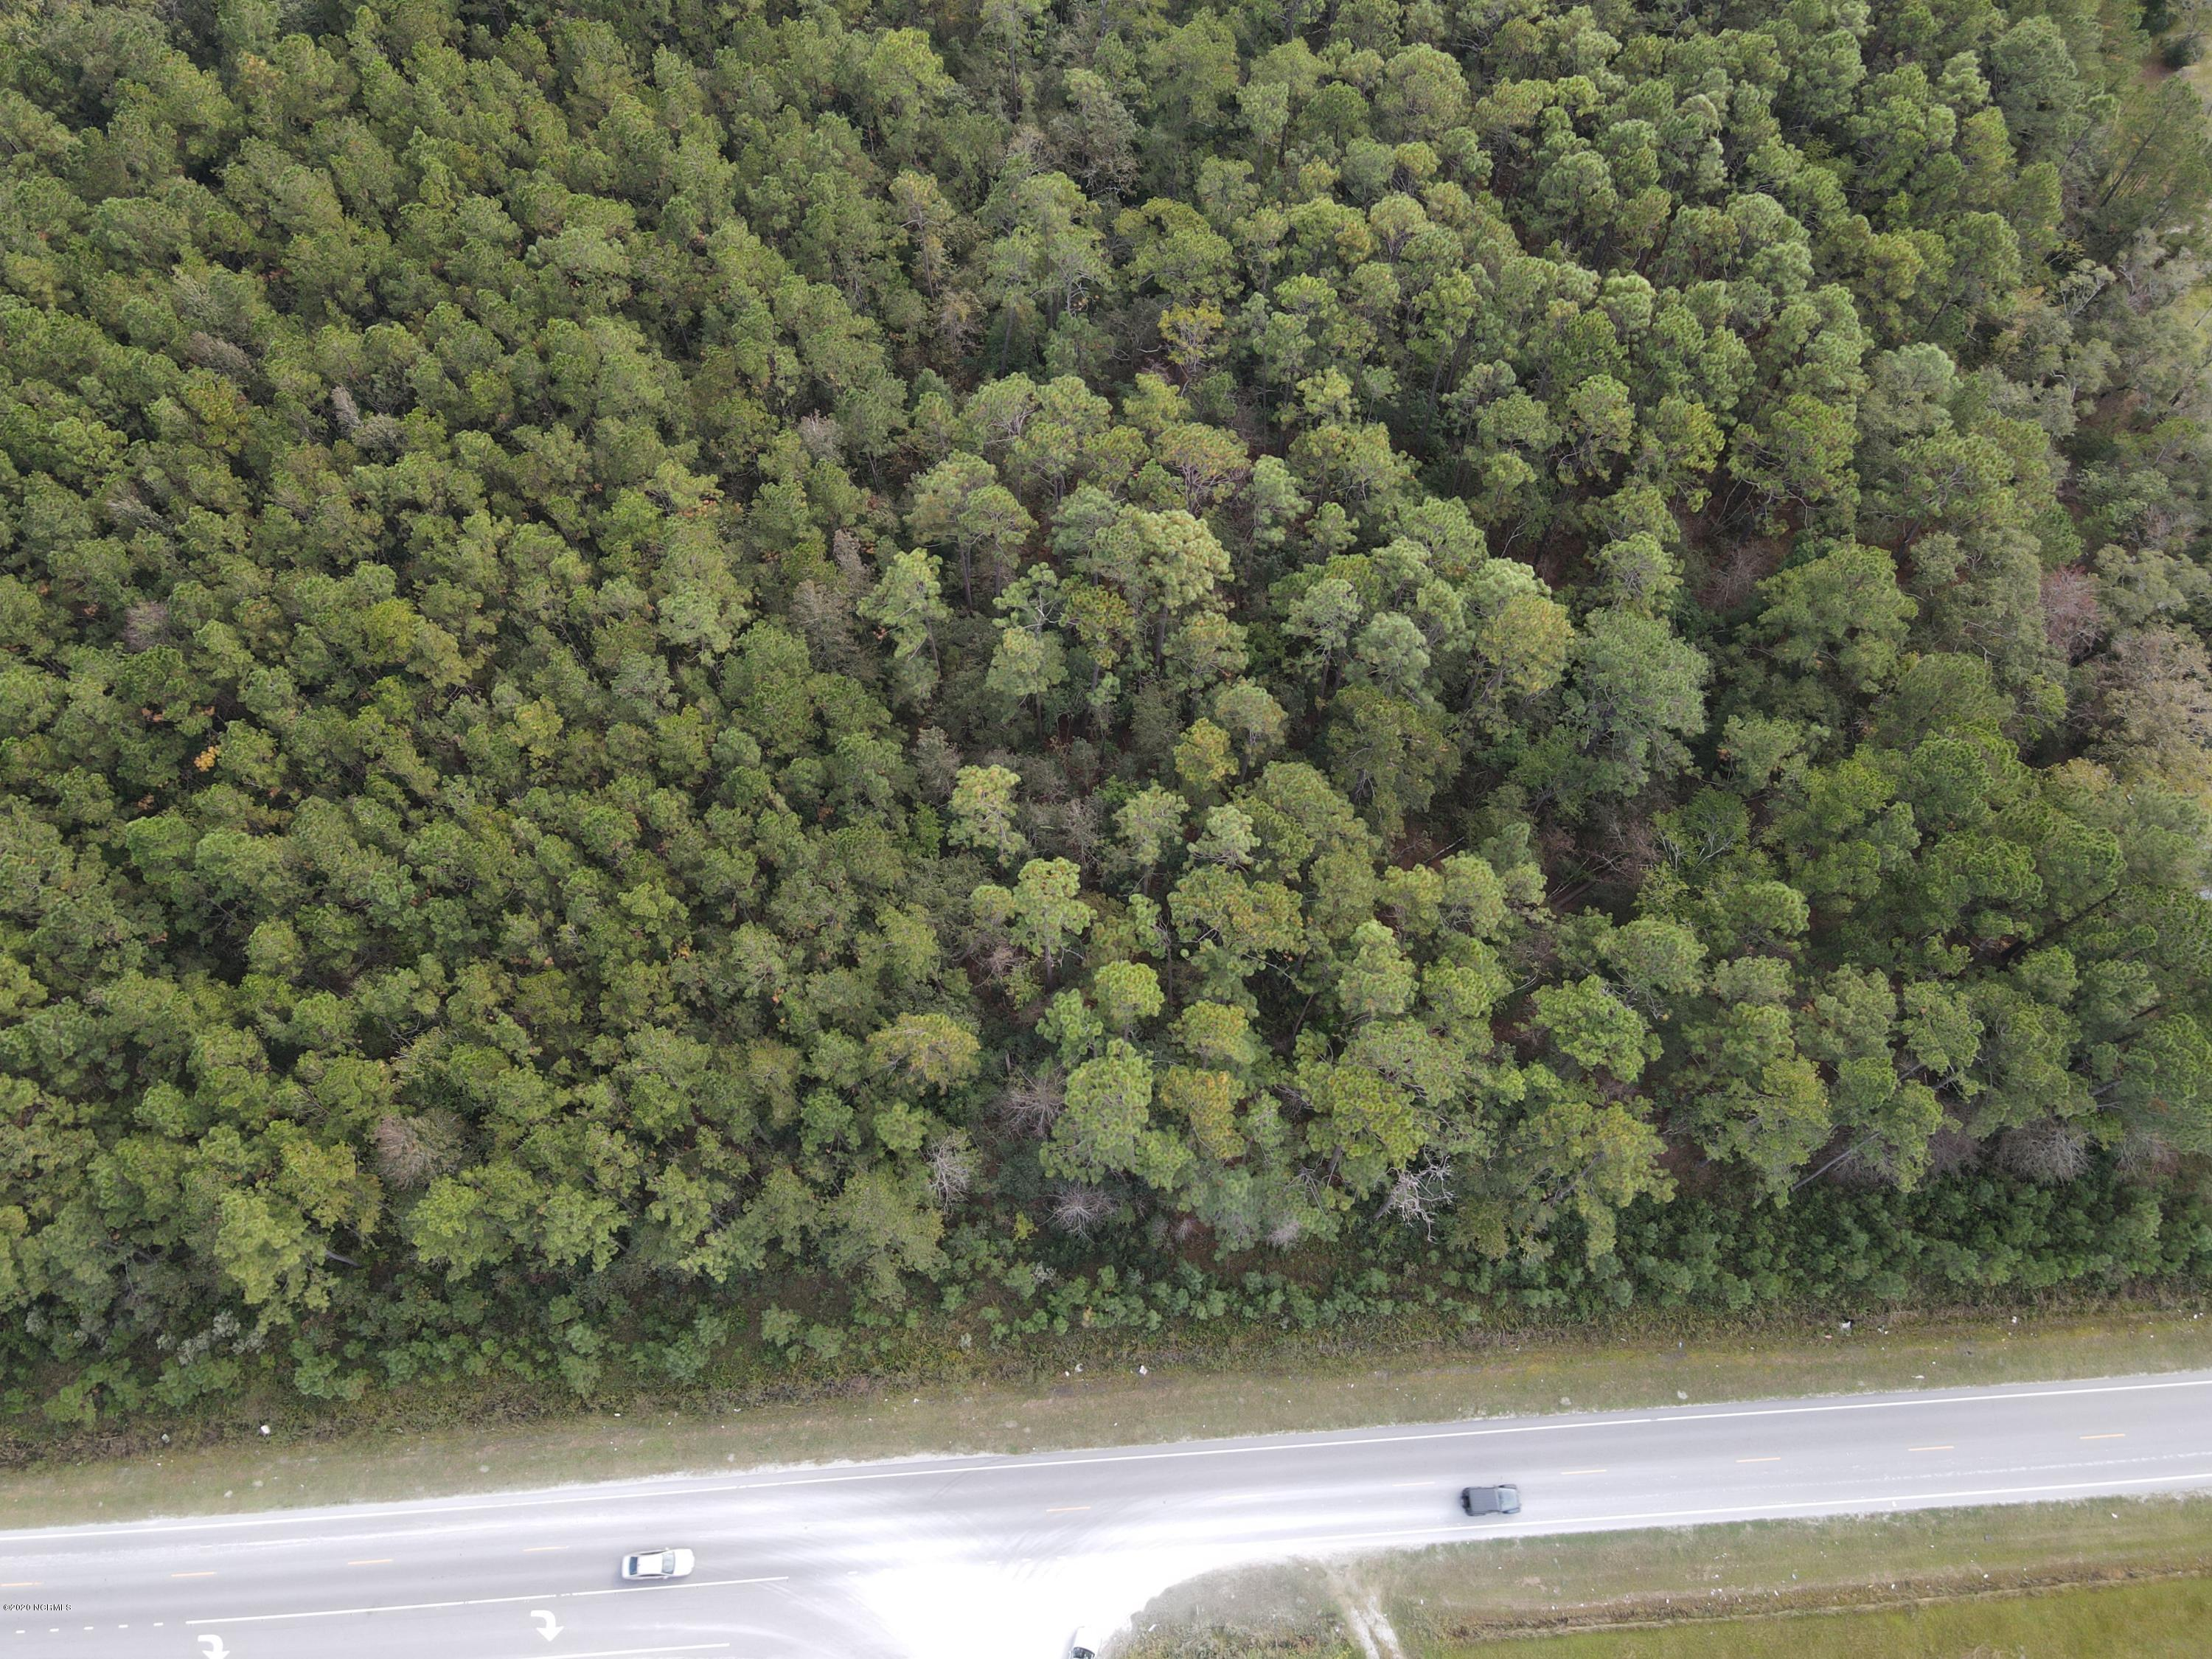 Tbd Hwy 172, Sneads Ferry, North Carolina 28460, ,Undeveloped,For sale,Hwy 172,100243640